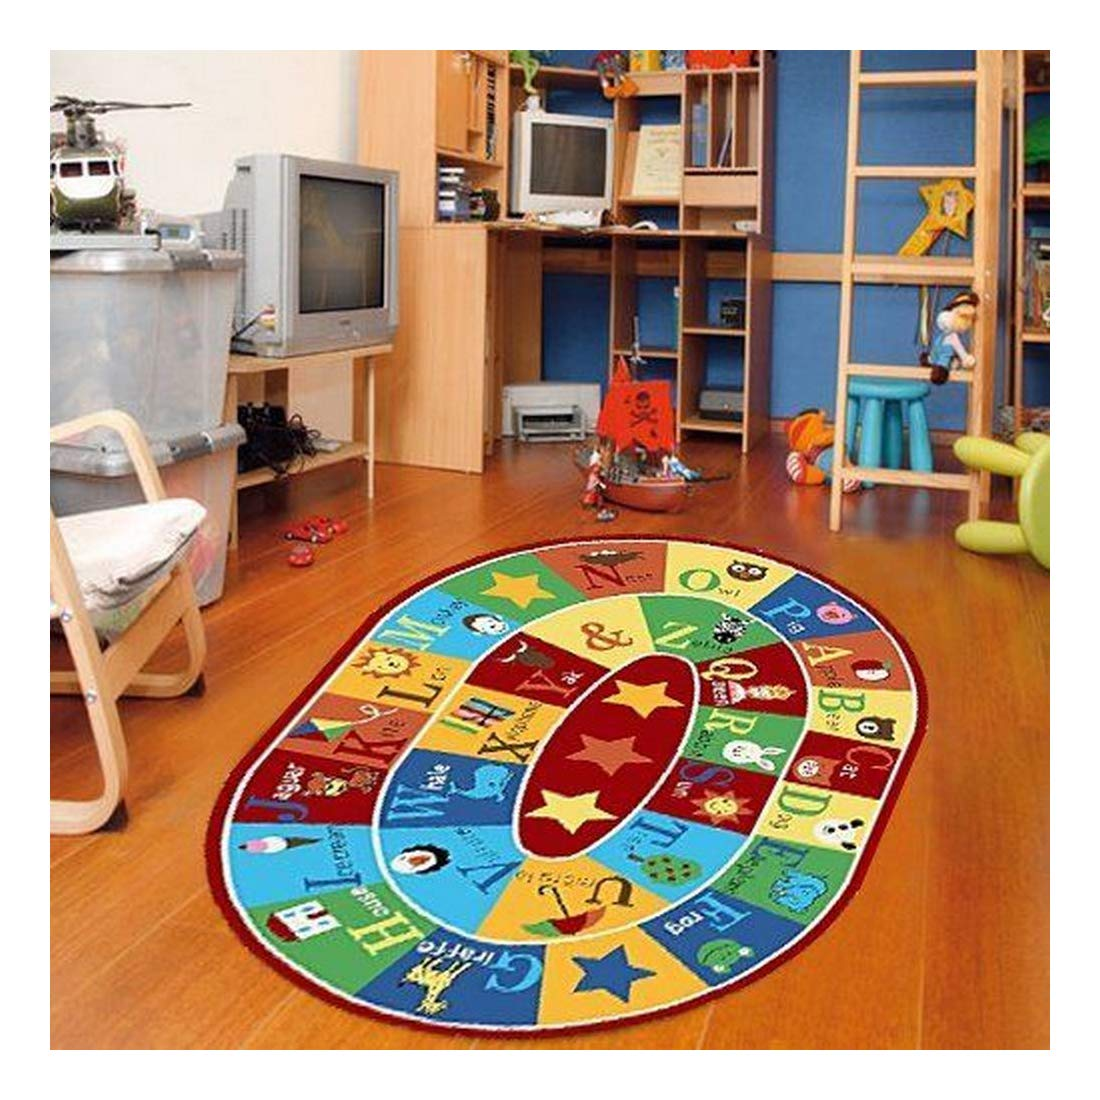 ABC with Animals 6 X 9 Children Area Rug Anti Skid Actual Oval Size S 6 x 9 2 Furnishmyplace – 745